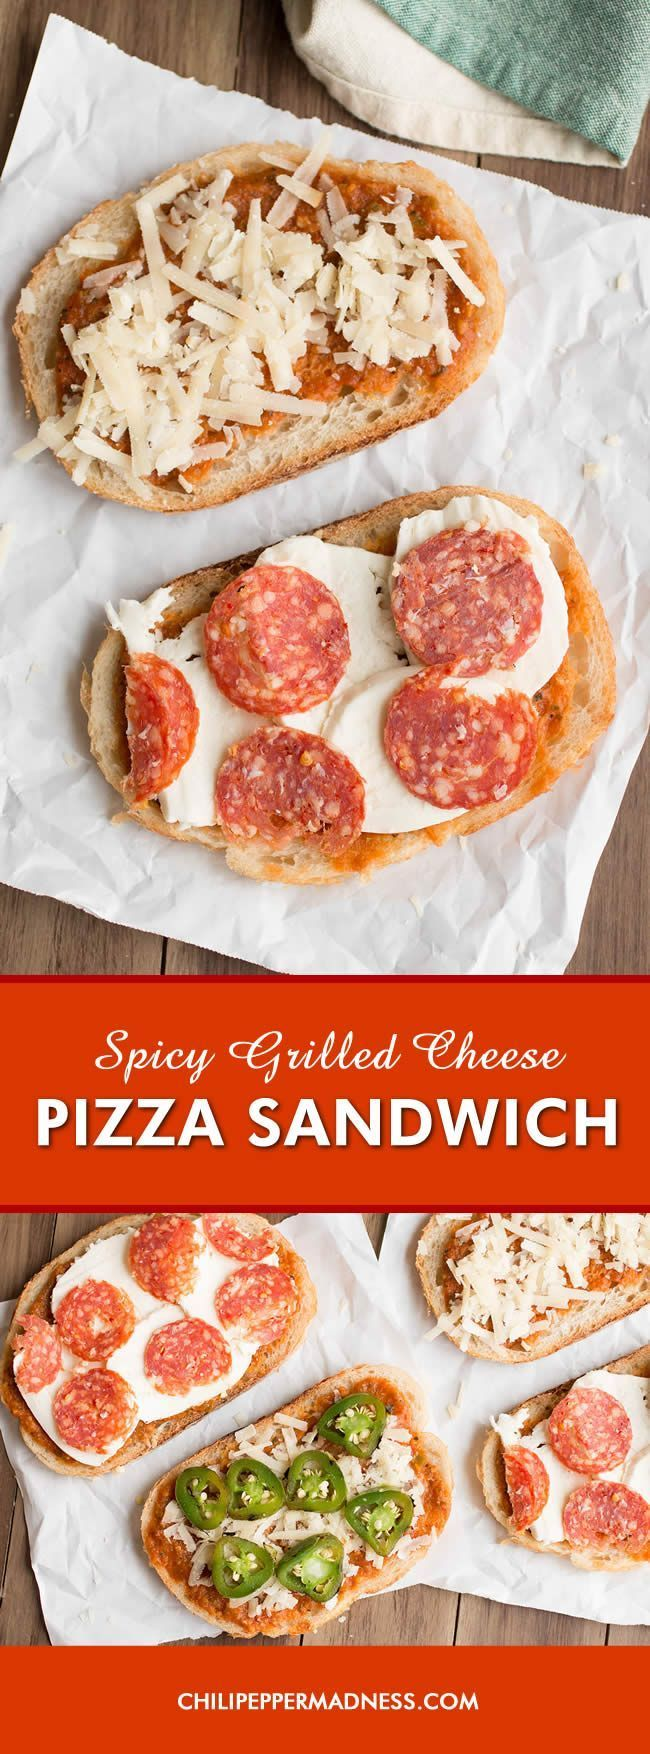 Spicy Pizza Grilled Cheese Sandwich - Satisfy your craving for pizza AND grilled cheese with this sandwich recipe, with homemade pizza sauce, spicy pepperoni, jalapeno peppers and plenty of mozzarella cheese melted between 2 slices of buttered sourdough bread. Delicious!